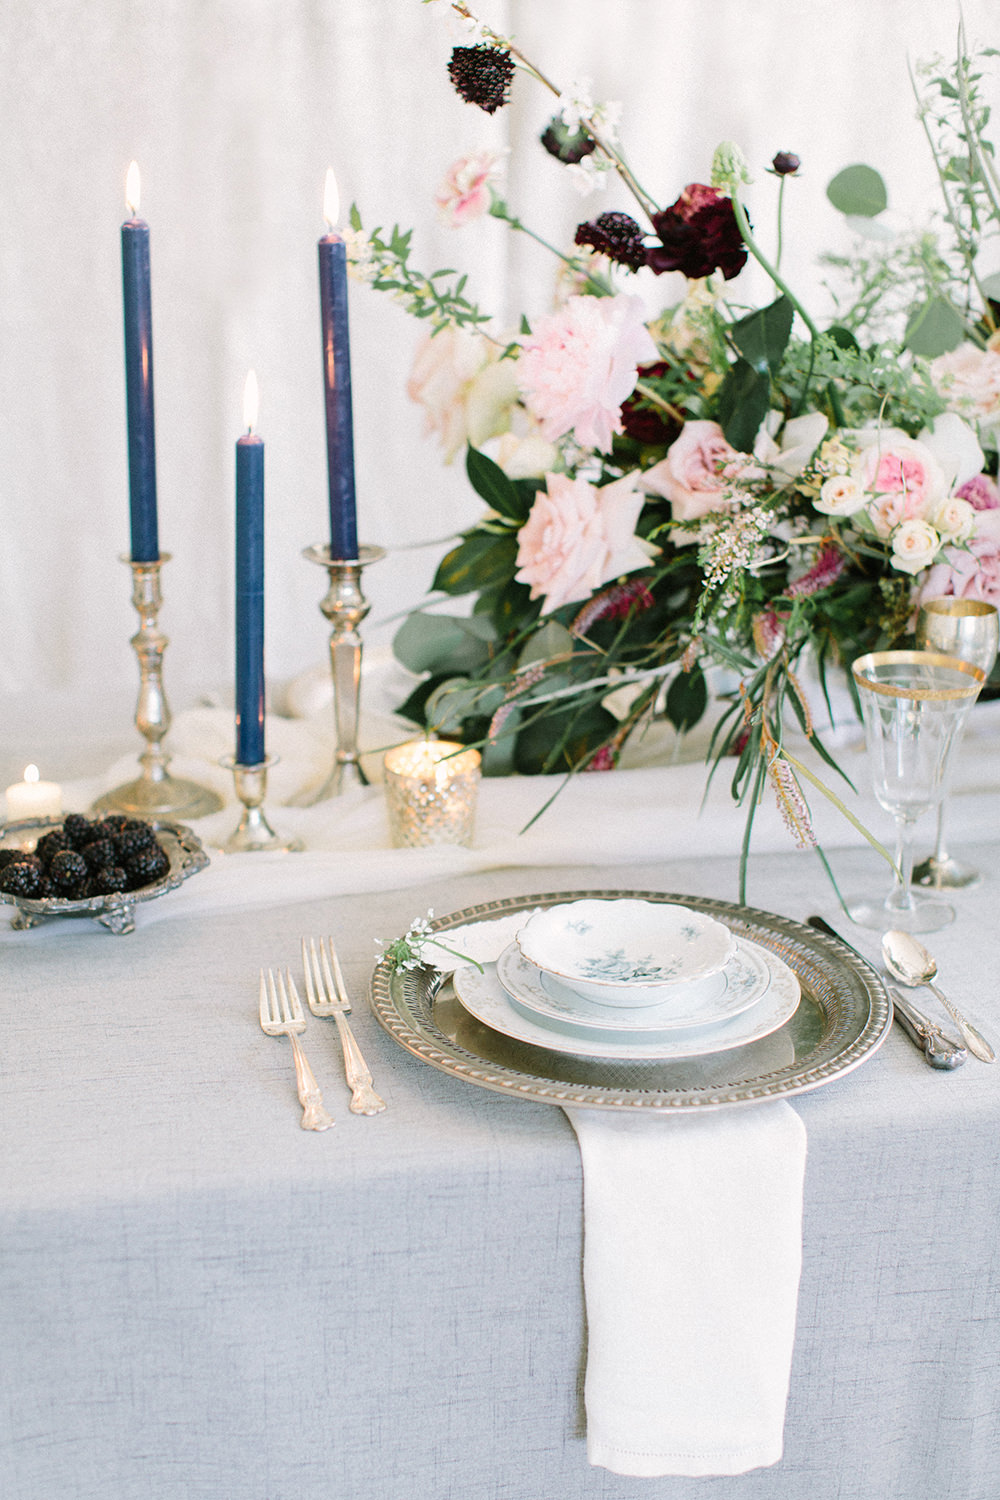 wedding place settings - photo by Erica J Photography http://ruffledblog.com/old-world-wedding-editorial-at-vizcaya-museum